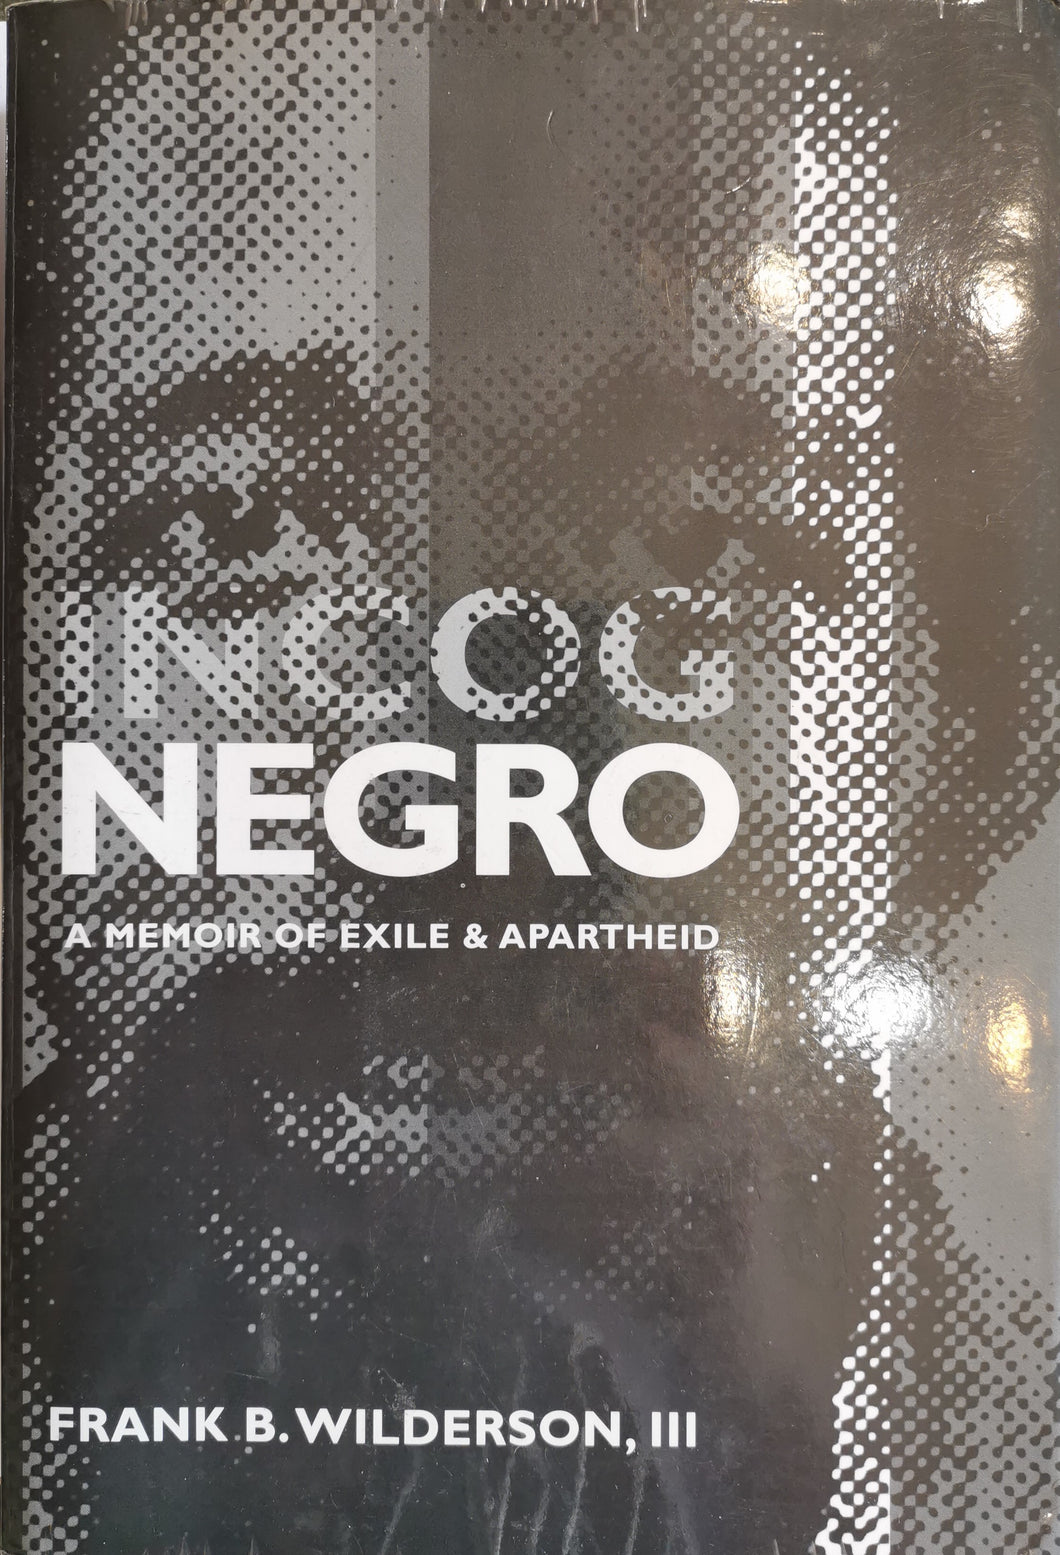 Frank Wilderson III - Incognegro: A Memoir of Exile and Apartheid (signed)